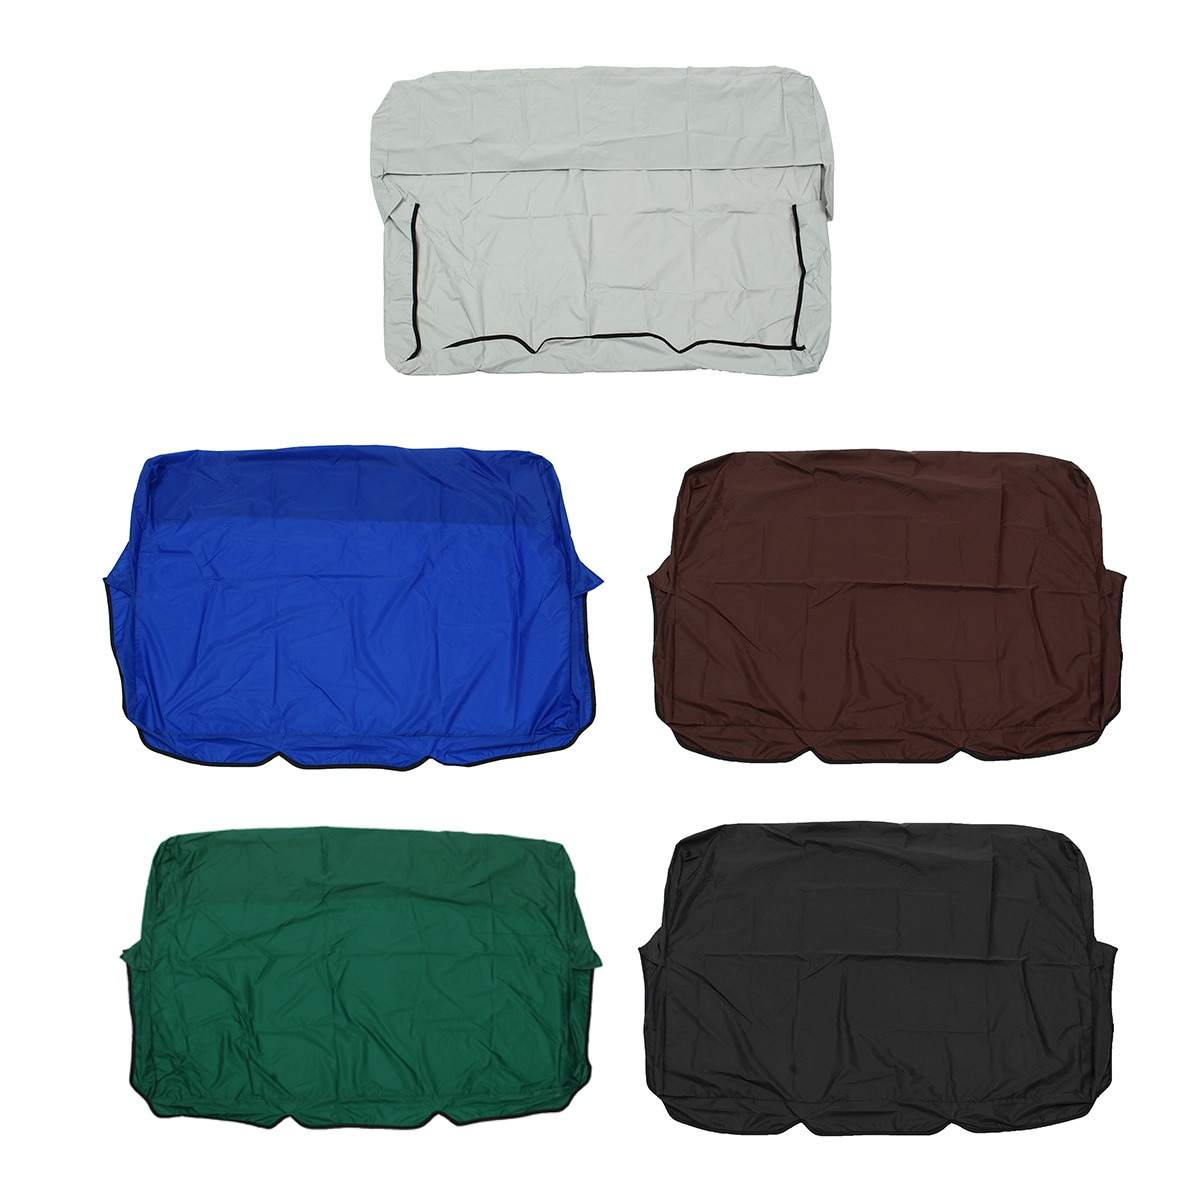 Fine 20pcs Rubber Table Chair Furniture Feet Leg Pads Tile Floor Protectors 18x15x5mm Comfortable And Easy To Wear Tools